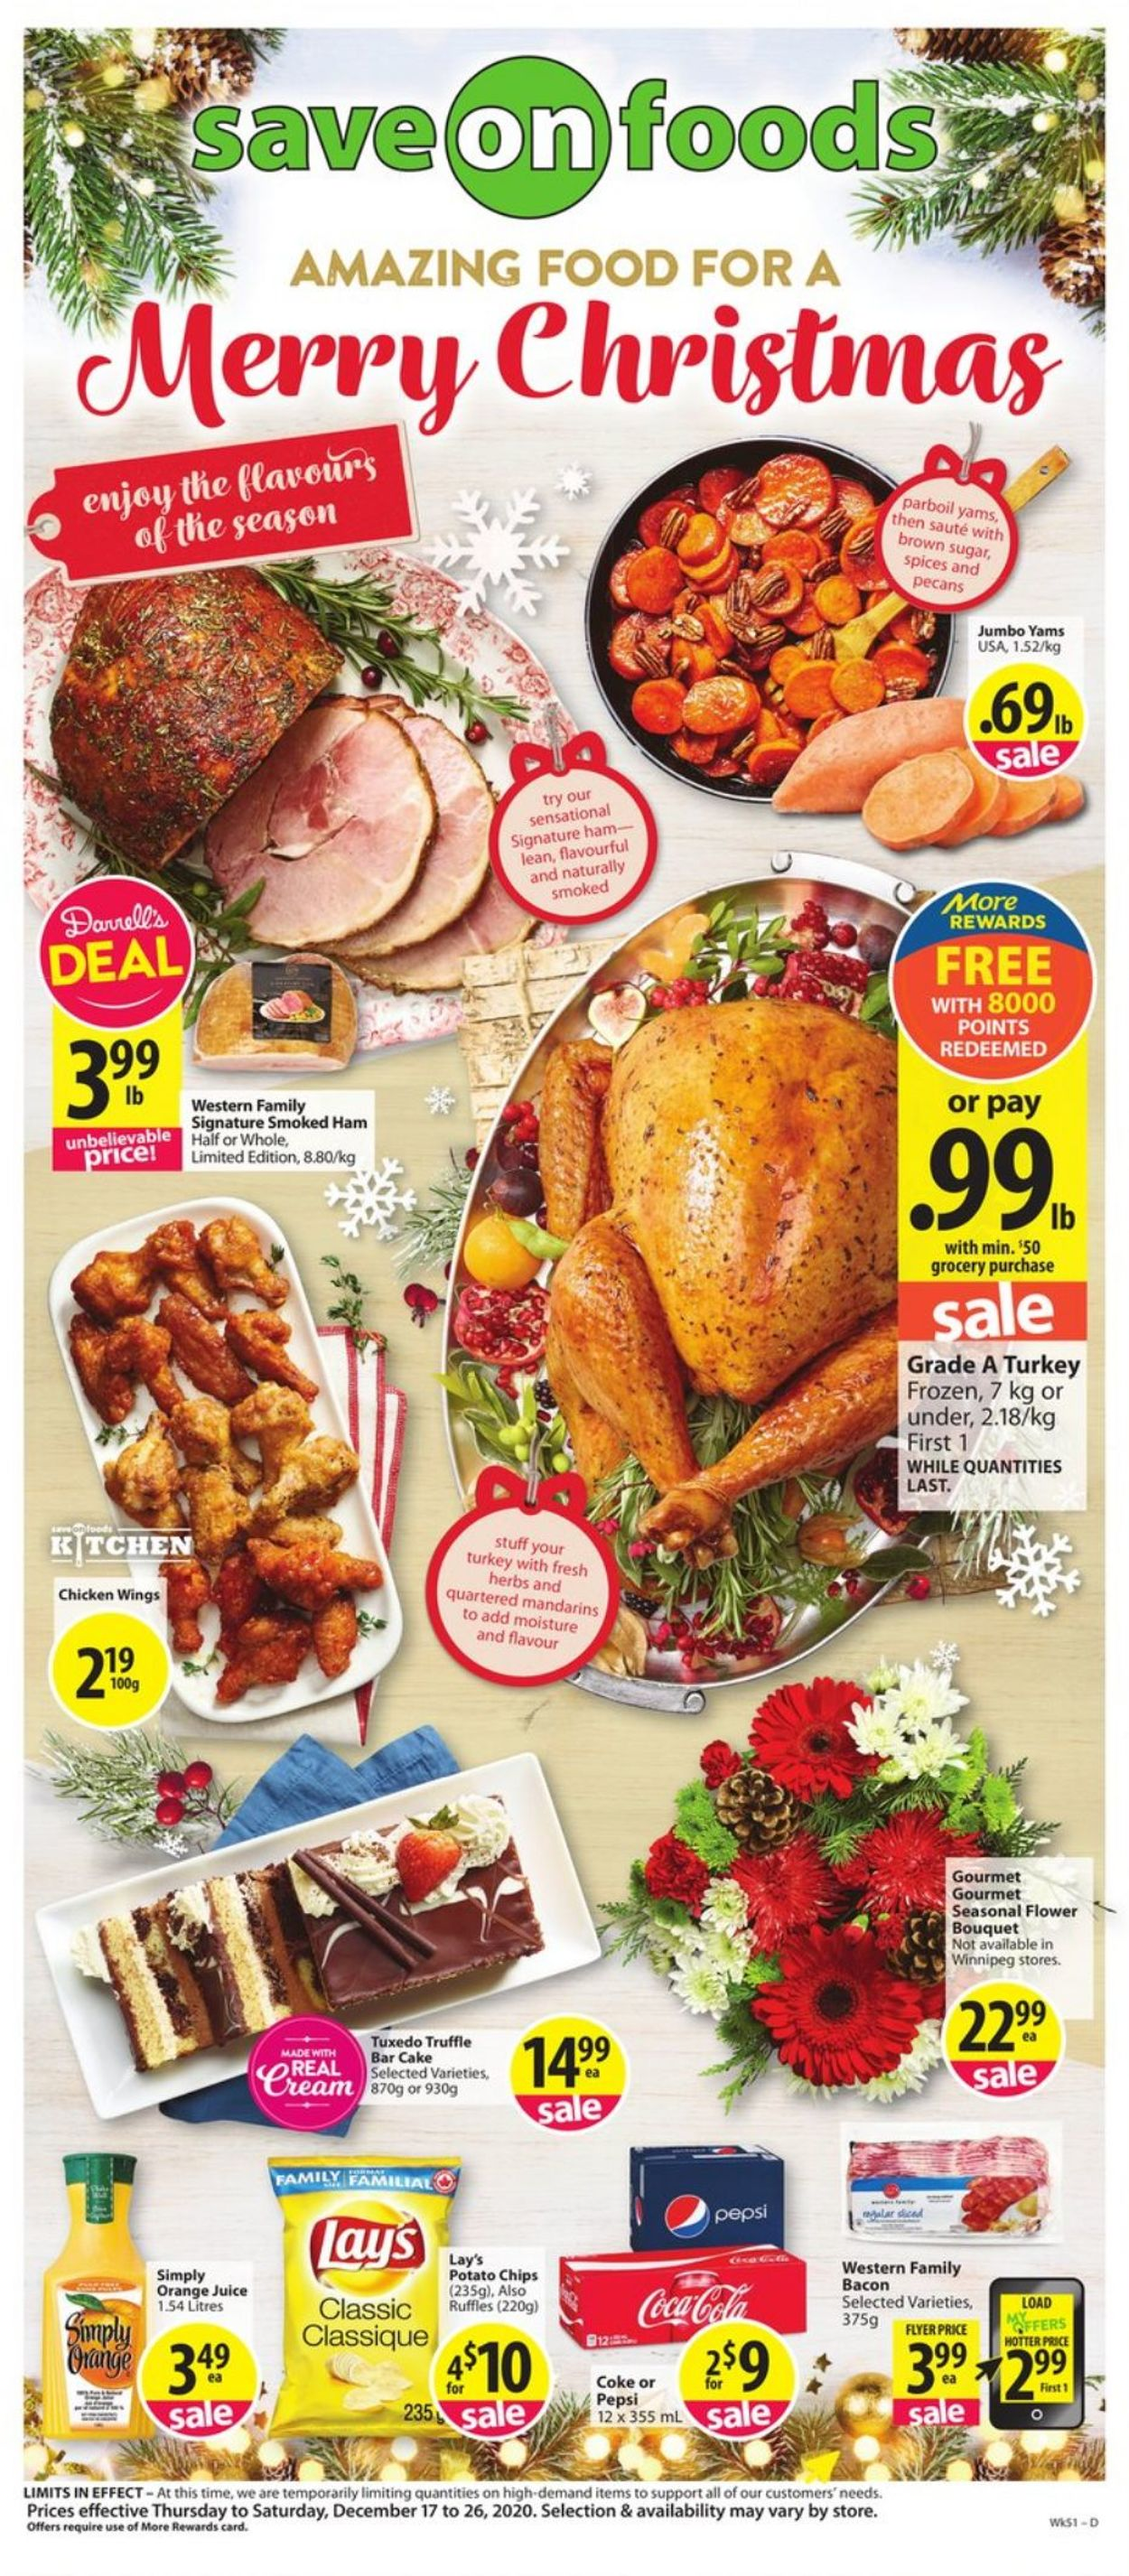 Save-On-Foods - Holiday 2020 Flyer - 12/17-12/26/2020